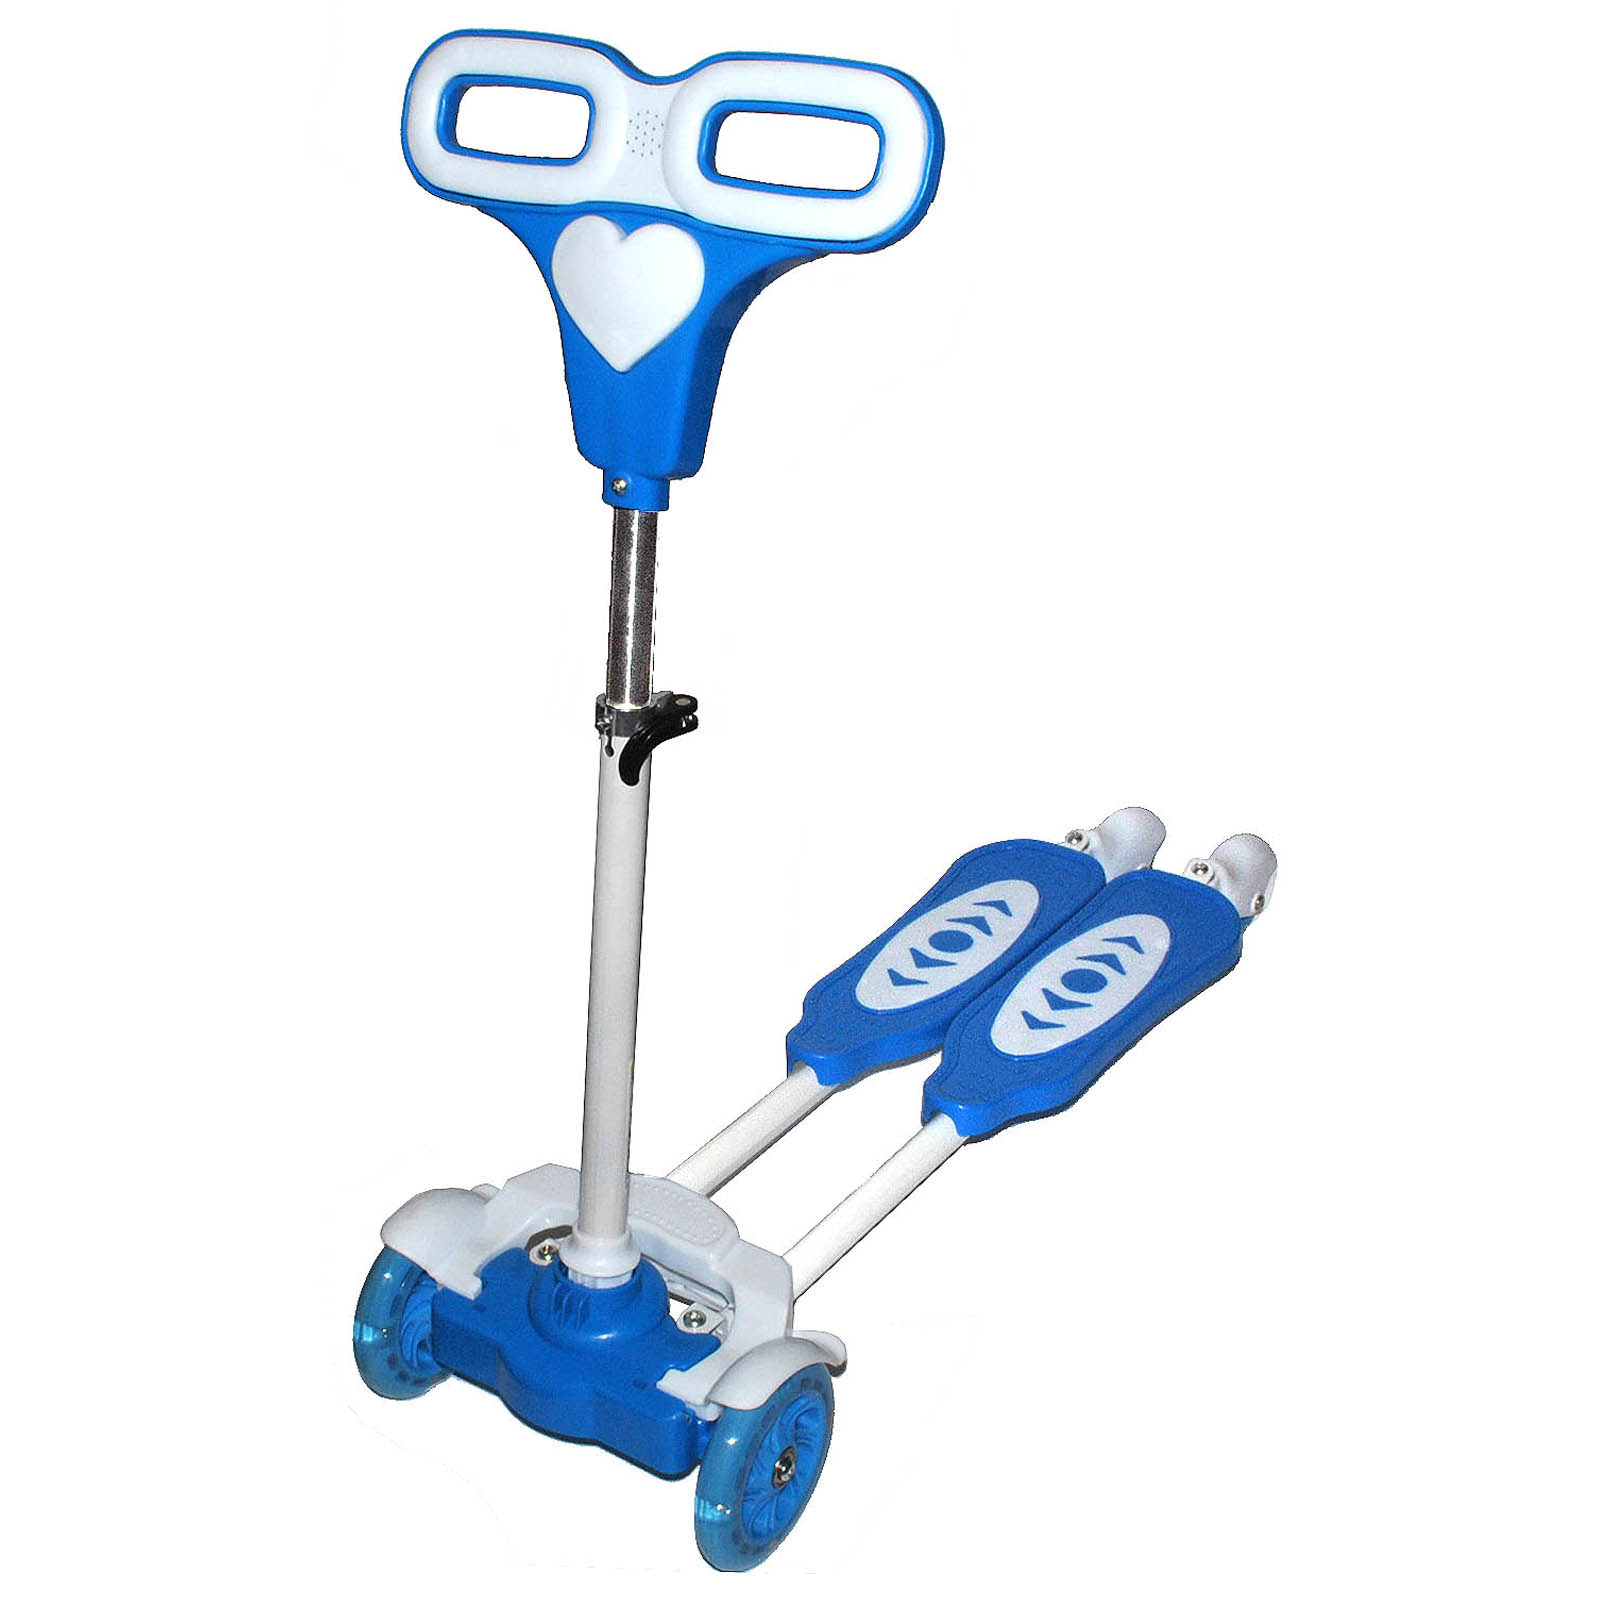 four wheel scooter with light frog motion for kids